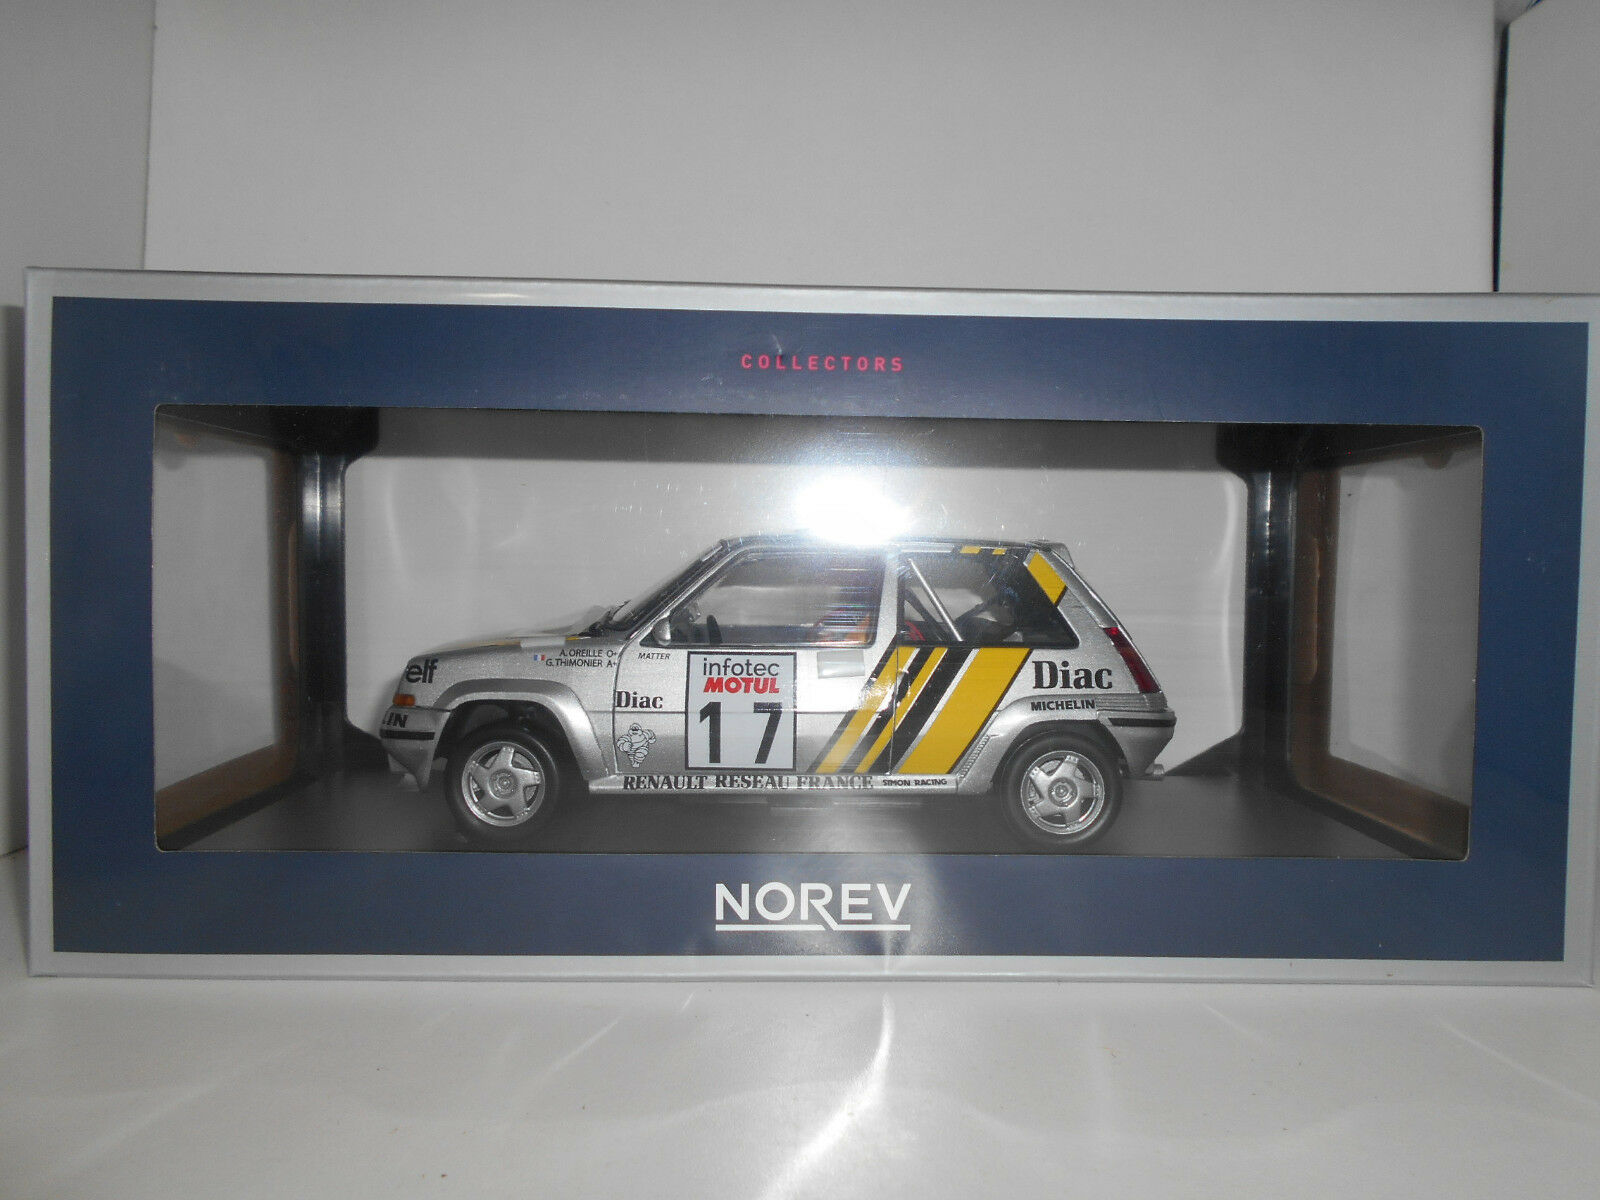 RENAULT 5 SUPERCINQ GT TURBO RALLY TOUR CORSE 1989 OREILLE NOREV 1 18